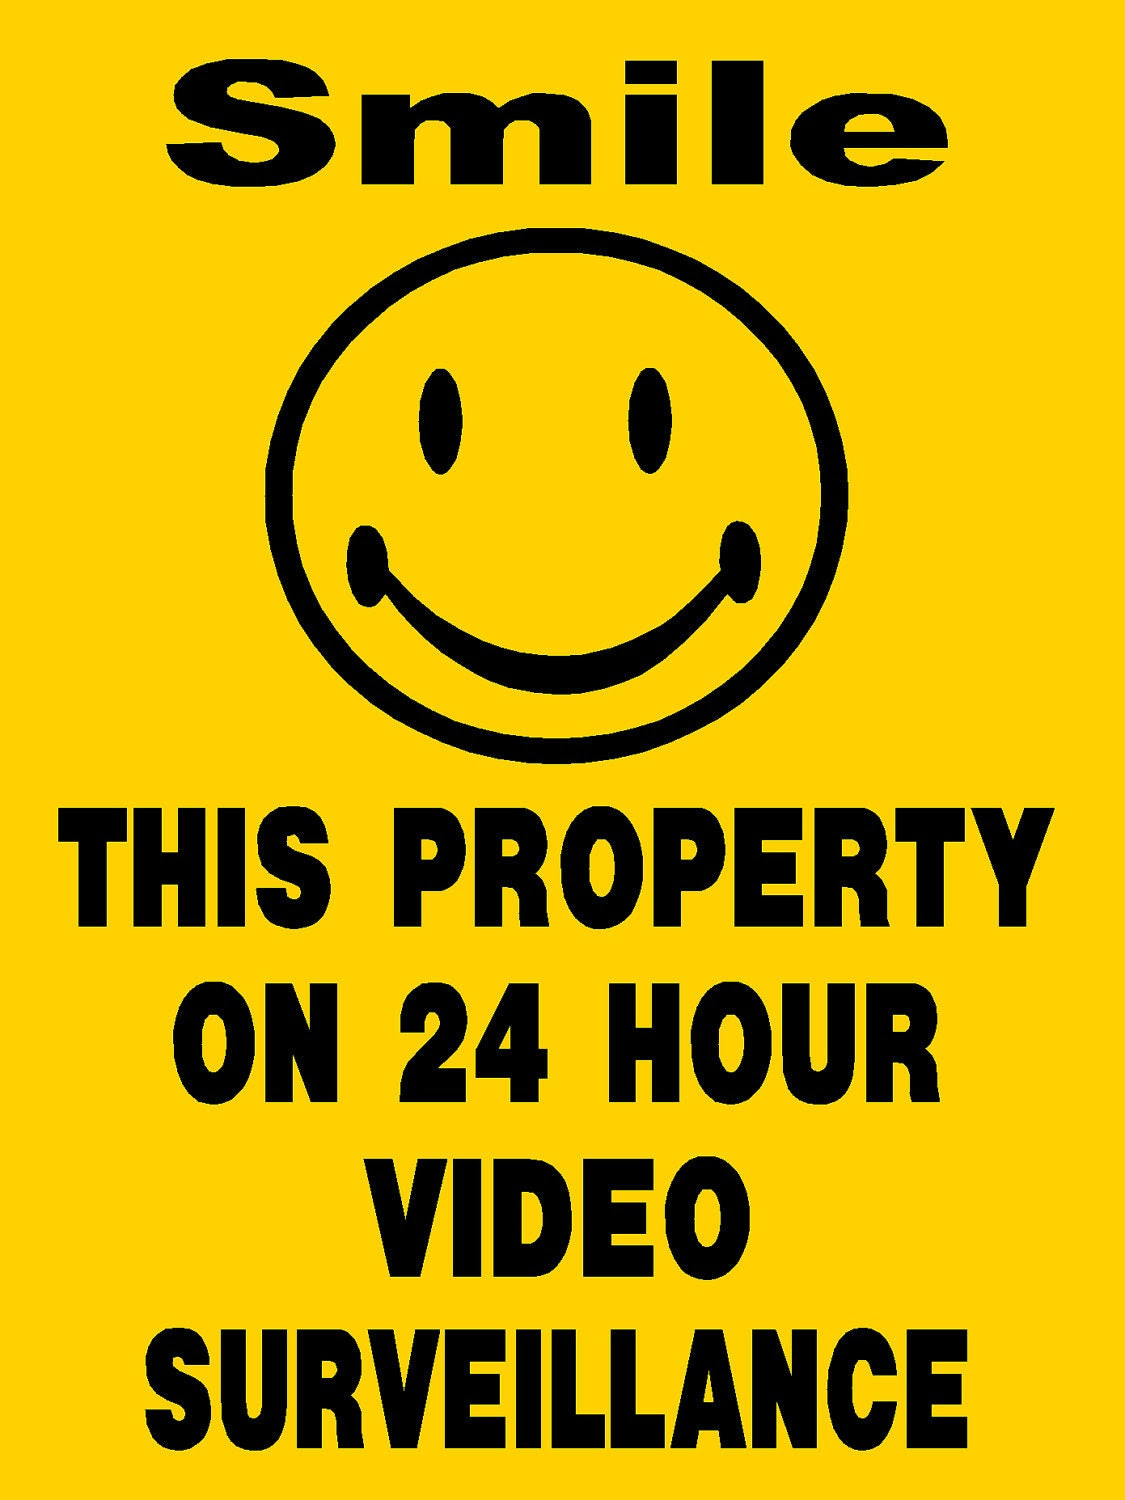 Security metal aluminum SIGN Smile This Property on 24 hours video Surveillance sign